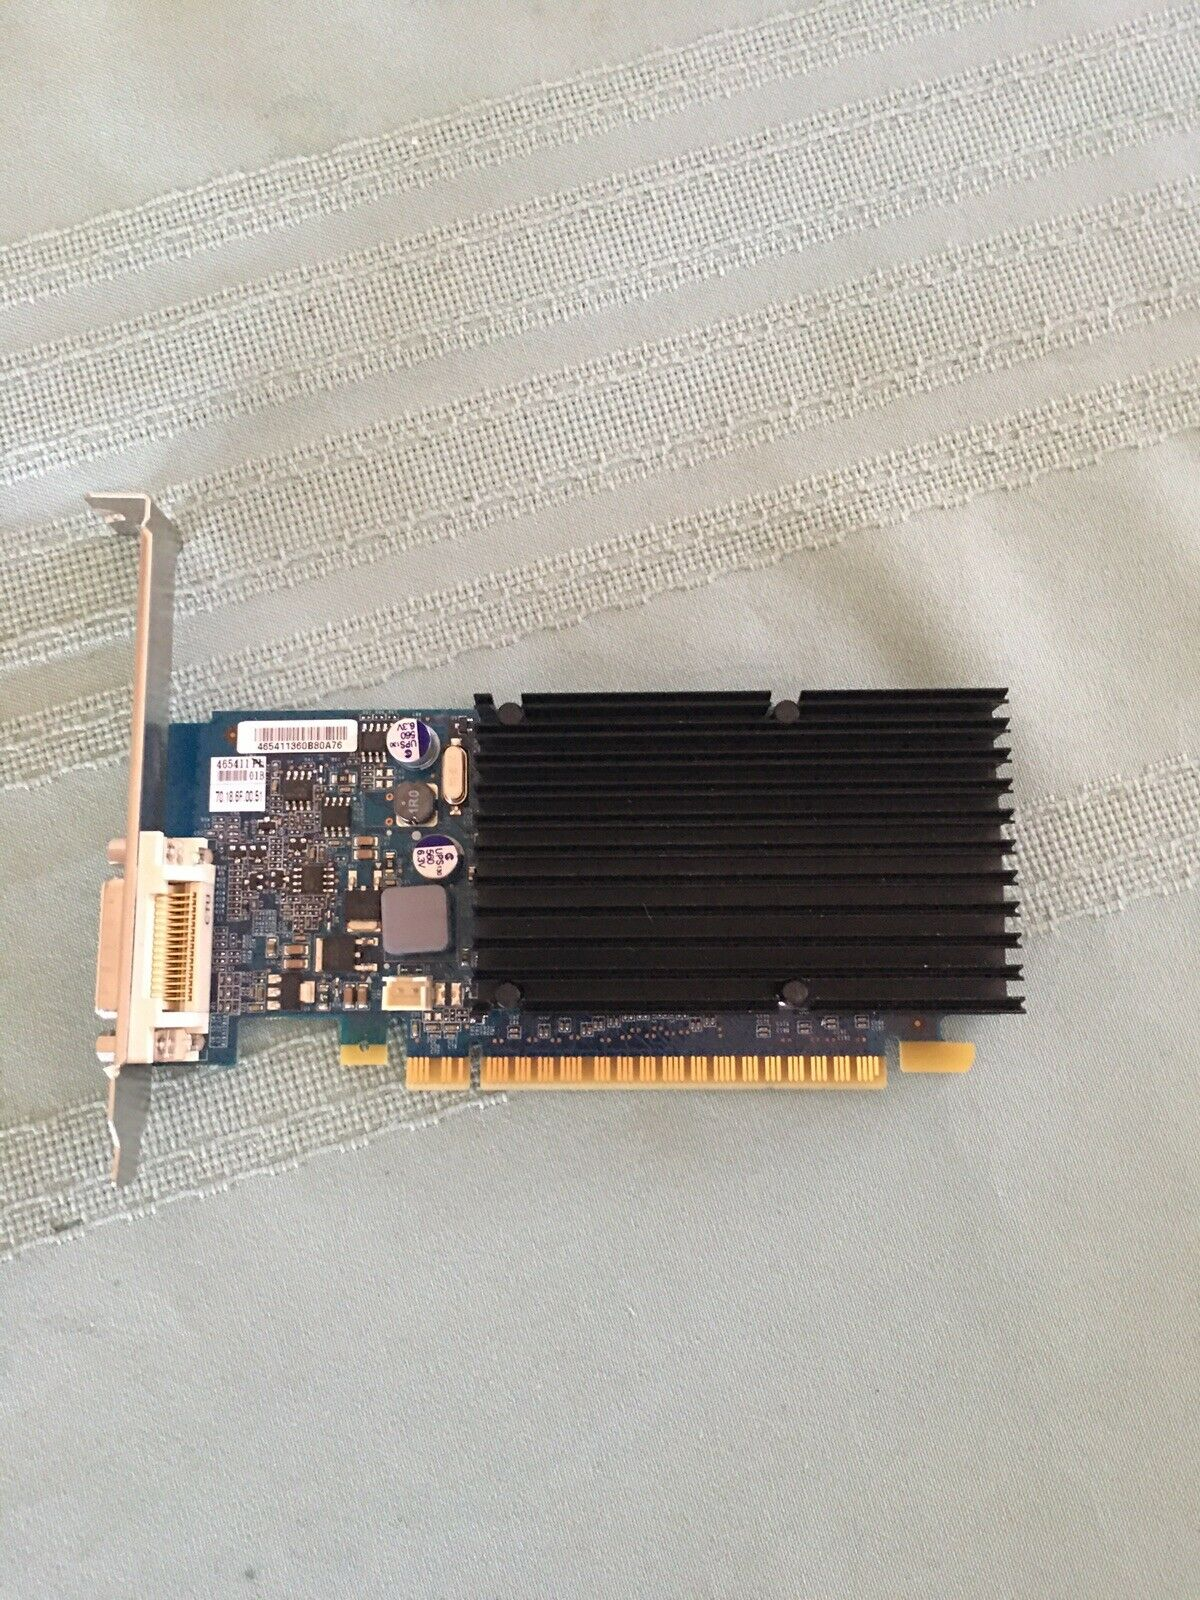 PNY GeForce 8400 GS DDR2 512 MB PCIe 2.0 Low Profile DVI Video Card. Great Shape